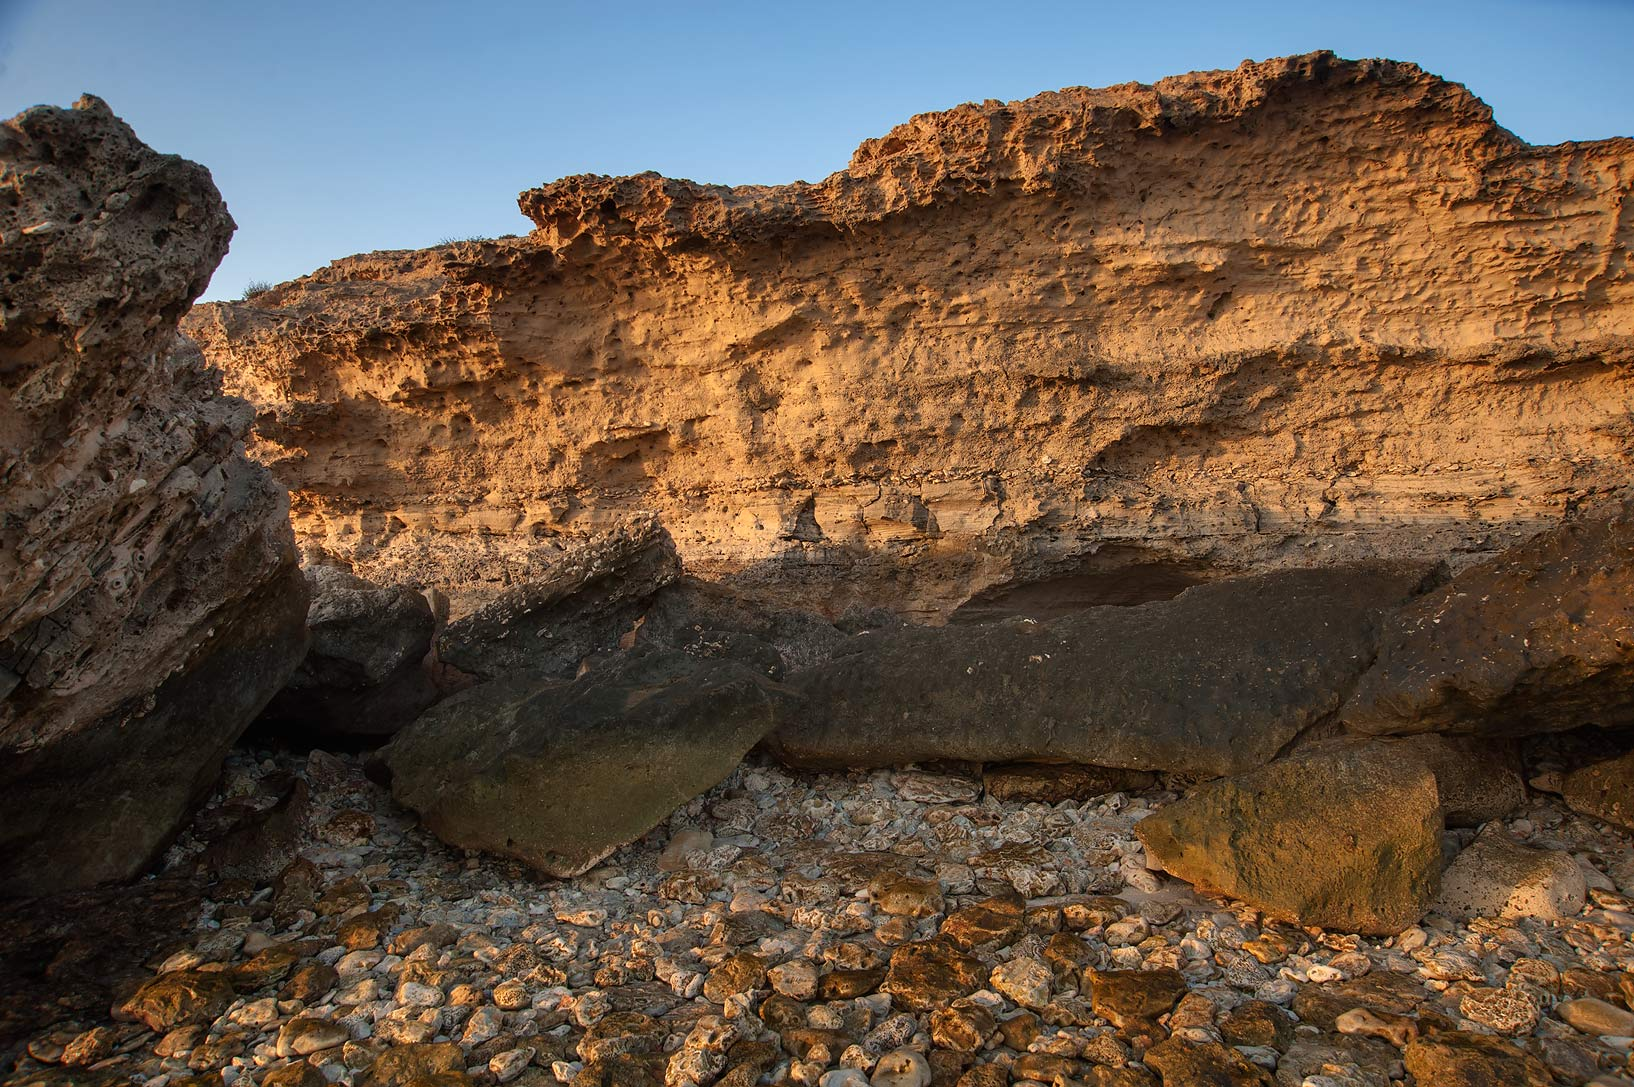 Limestone outcrops on a rocky beach near Jebel Fuwairit. Qatar